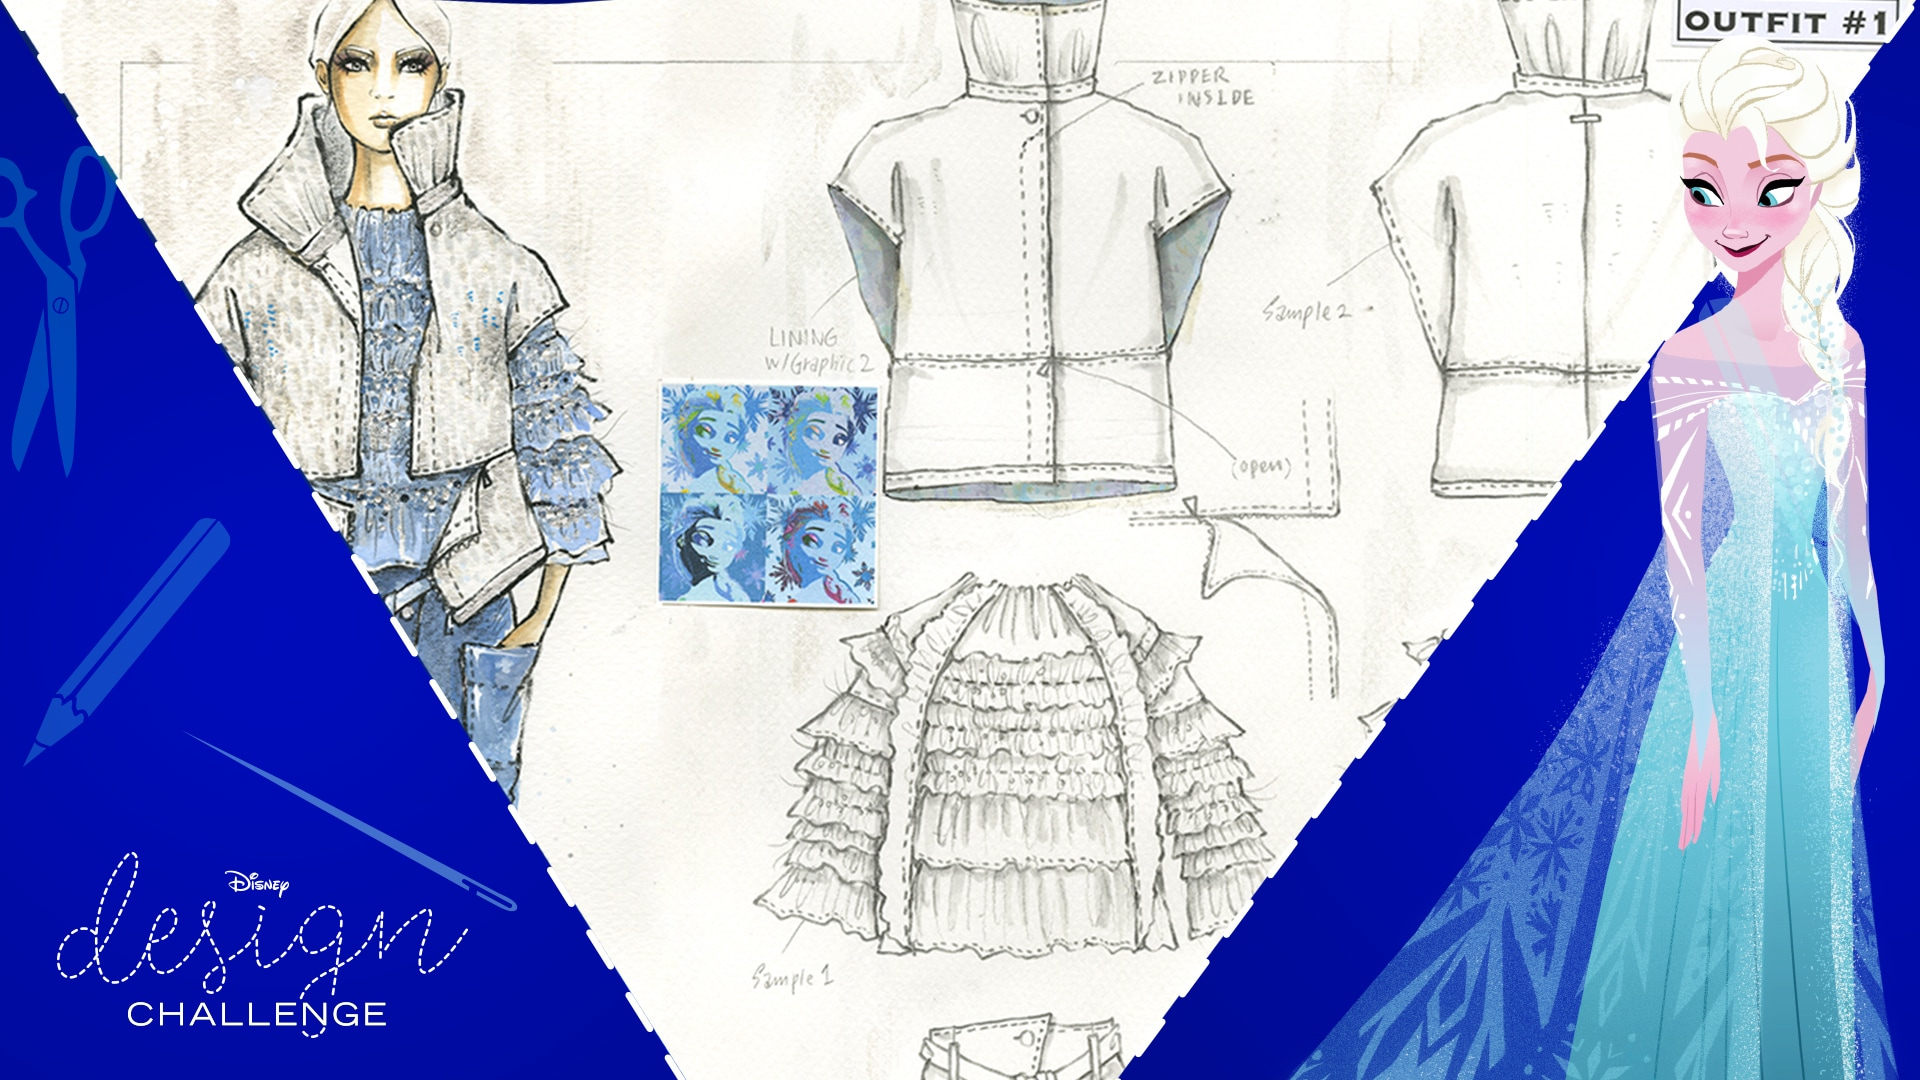 Otis Fashion Students Take On Disney Design Challenge Frozen Fashion | Disney Style